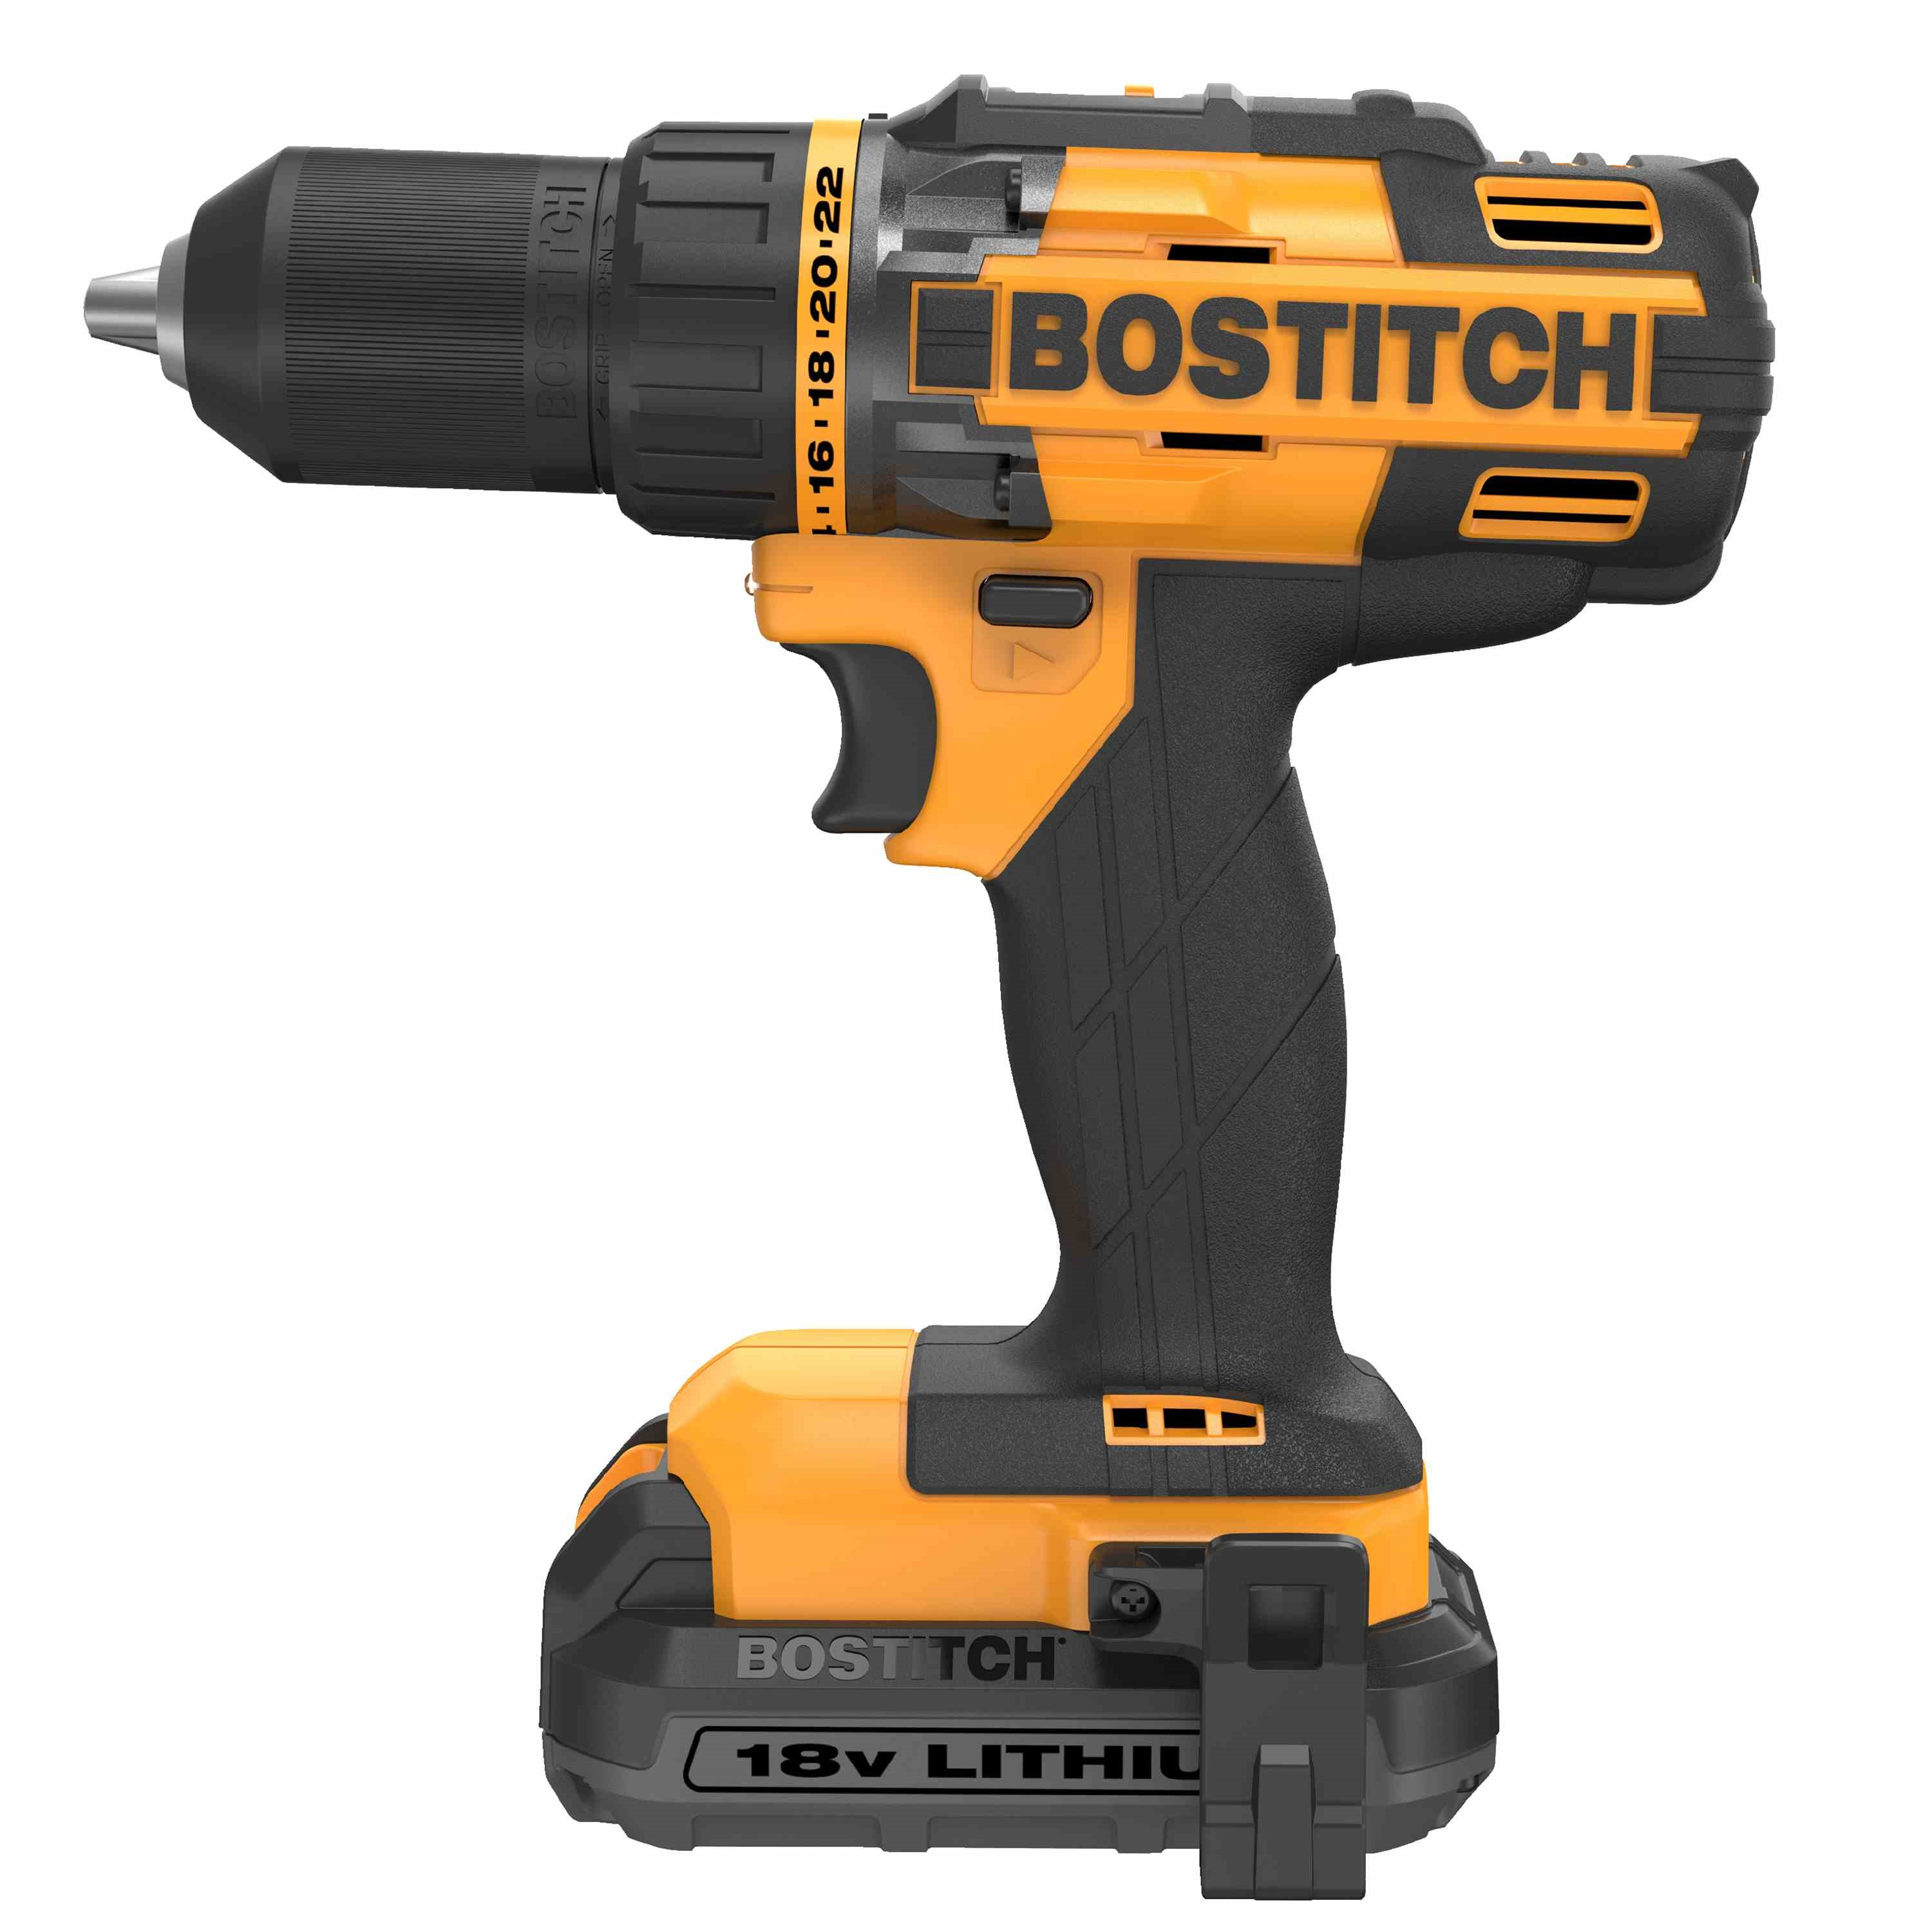 Bostitch - 18V Lithium 2 Tool Drill  Impact Combo Kit - BTCK410L2